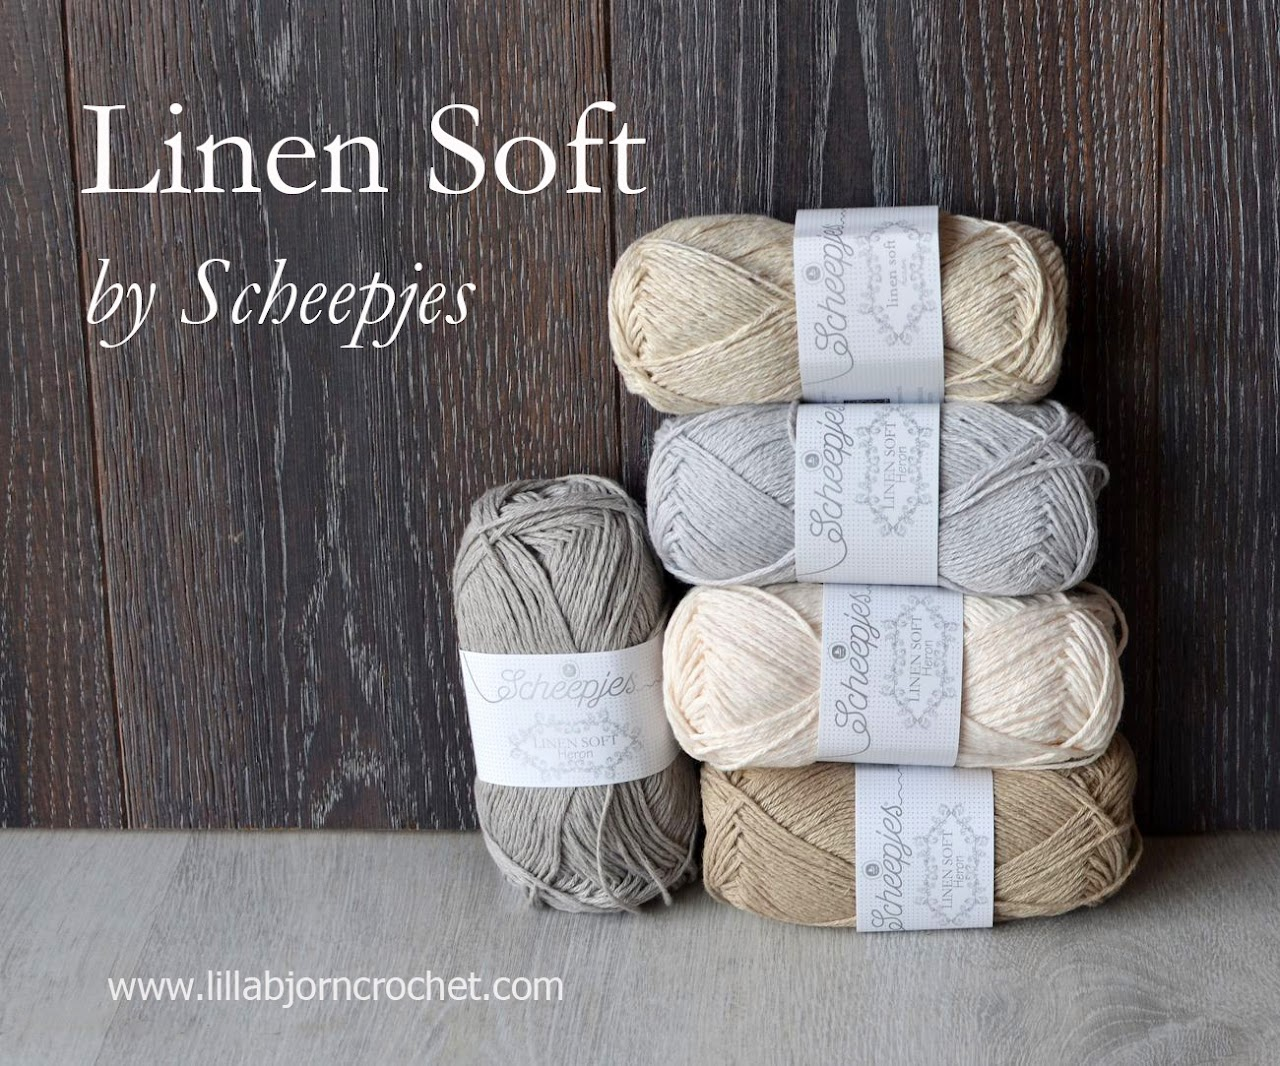 Linen Soft yarn by Scheepjes - review by LillaBjornCrochet